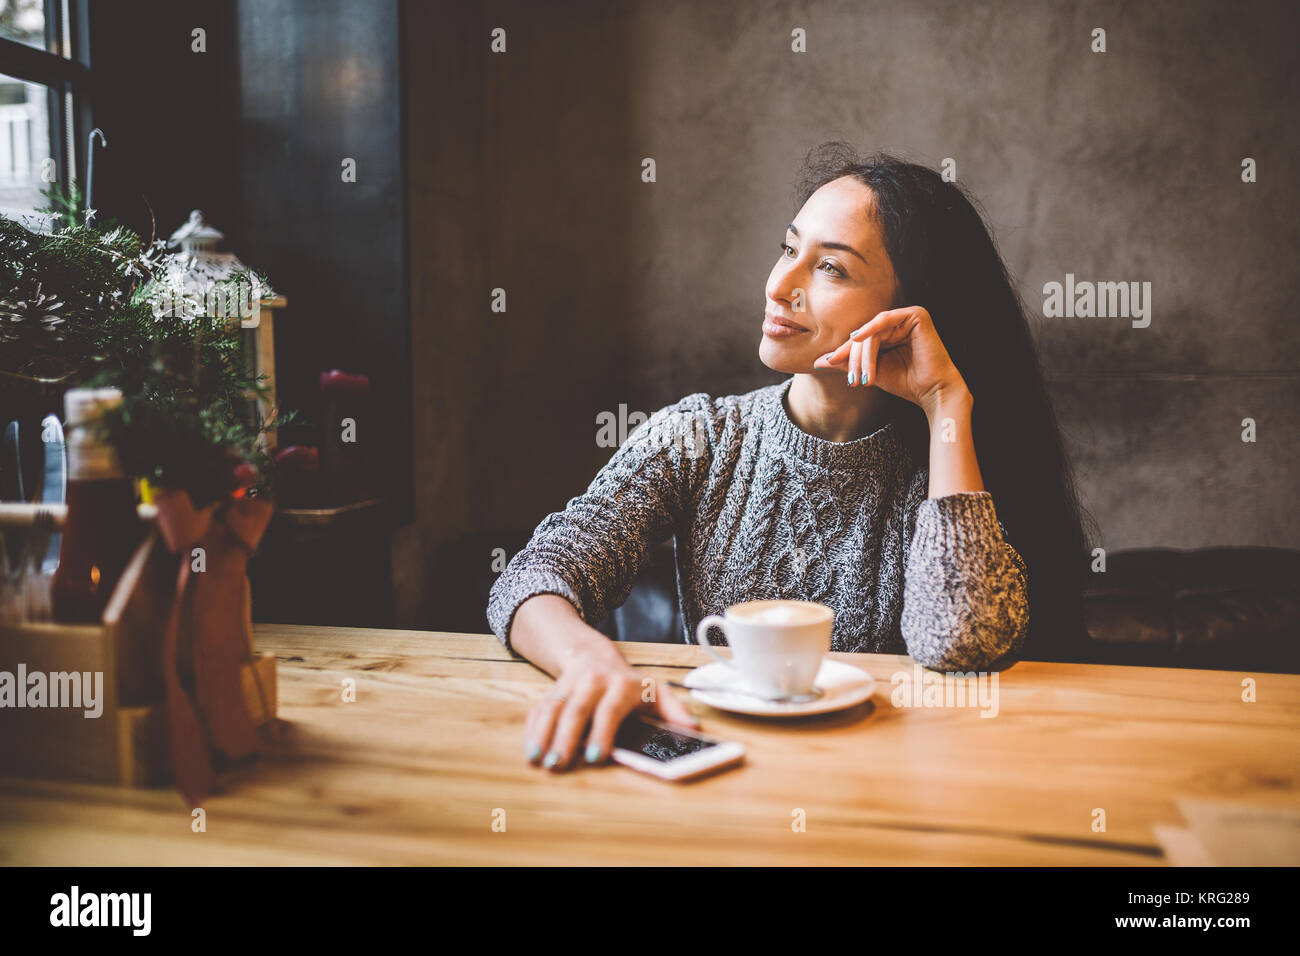 beautiful young girl drinks coffee from a white cup, next to her cell phone in a cafe decorated with Christmas decor. - Stock Image